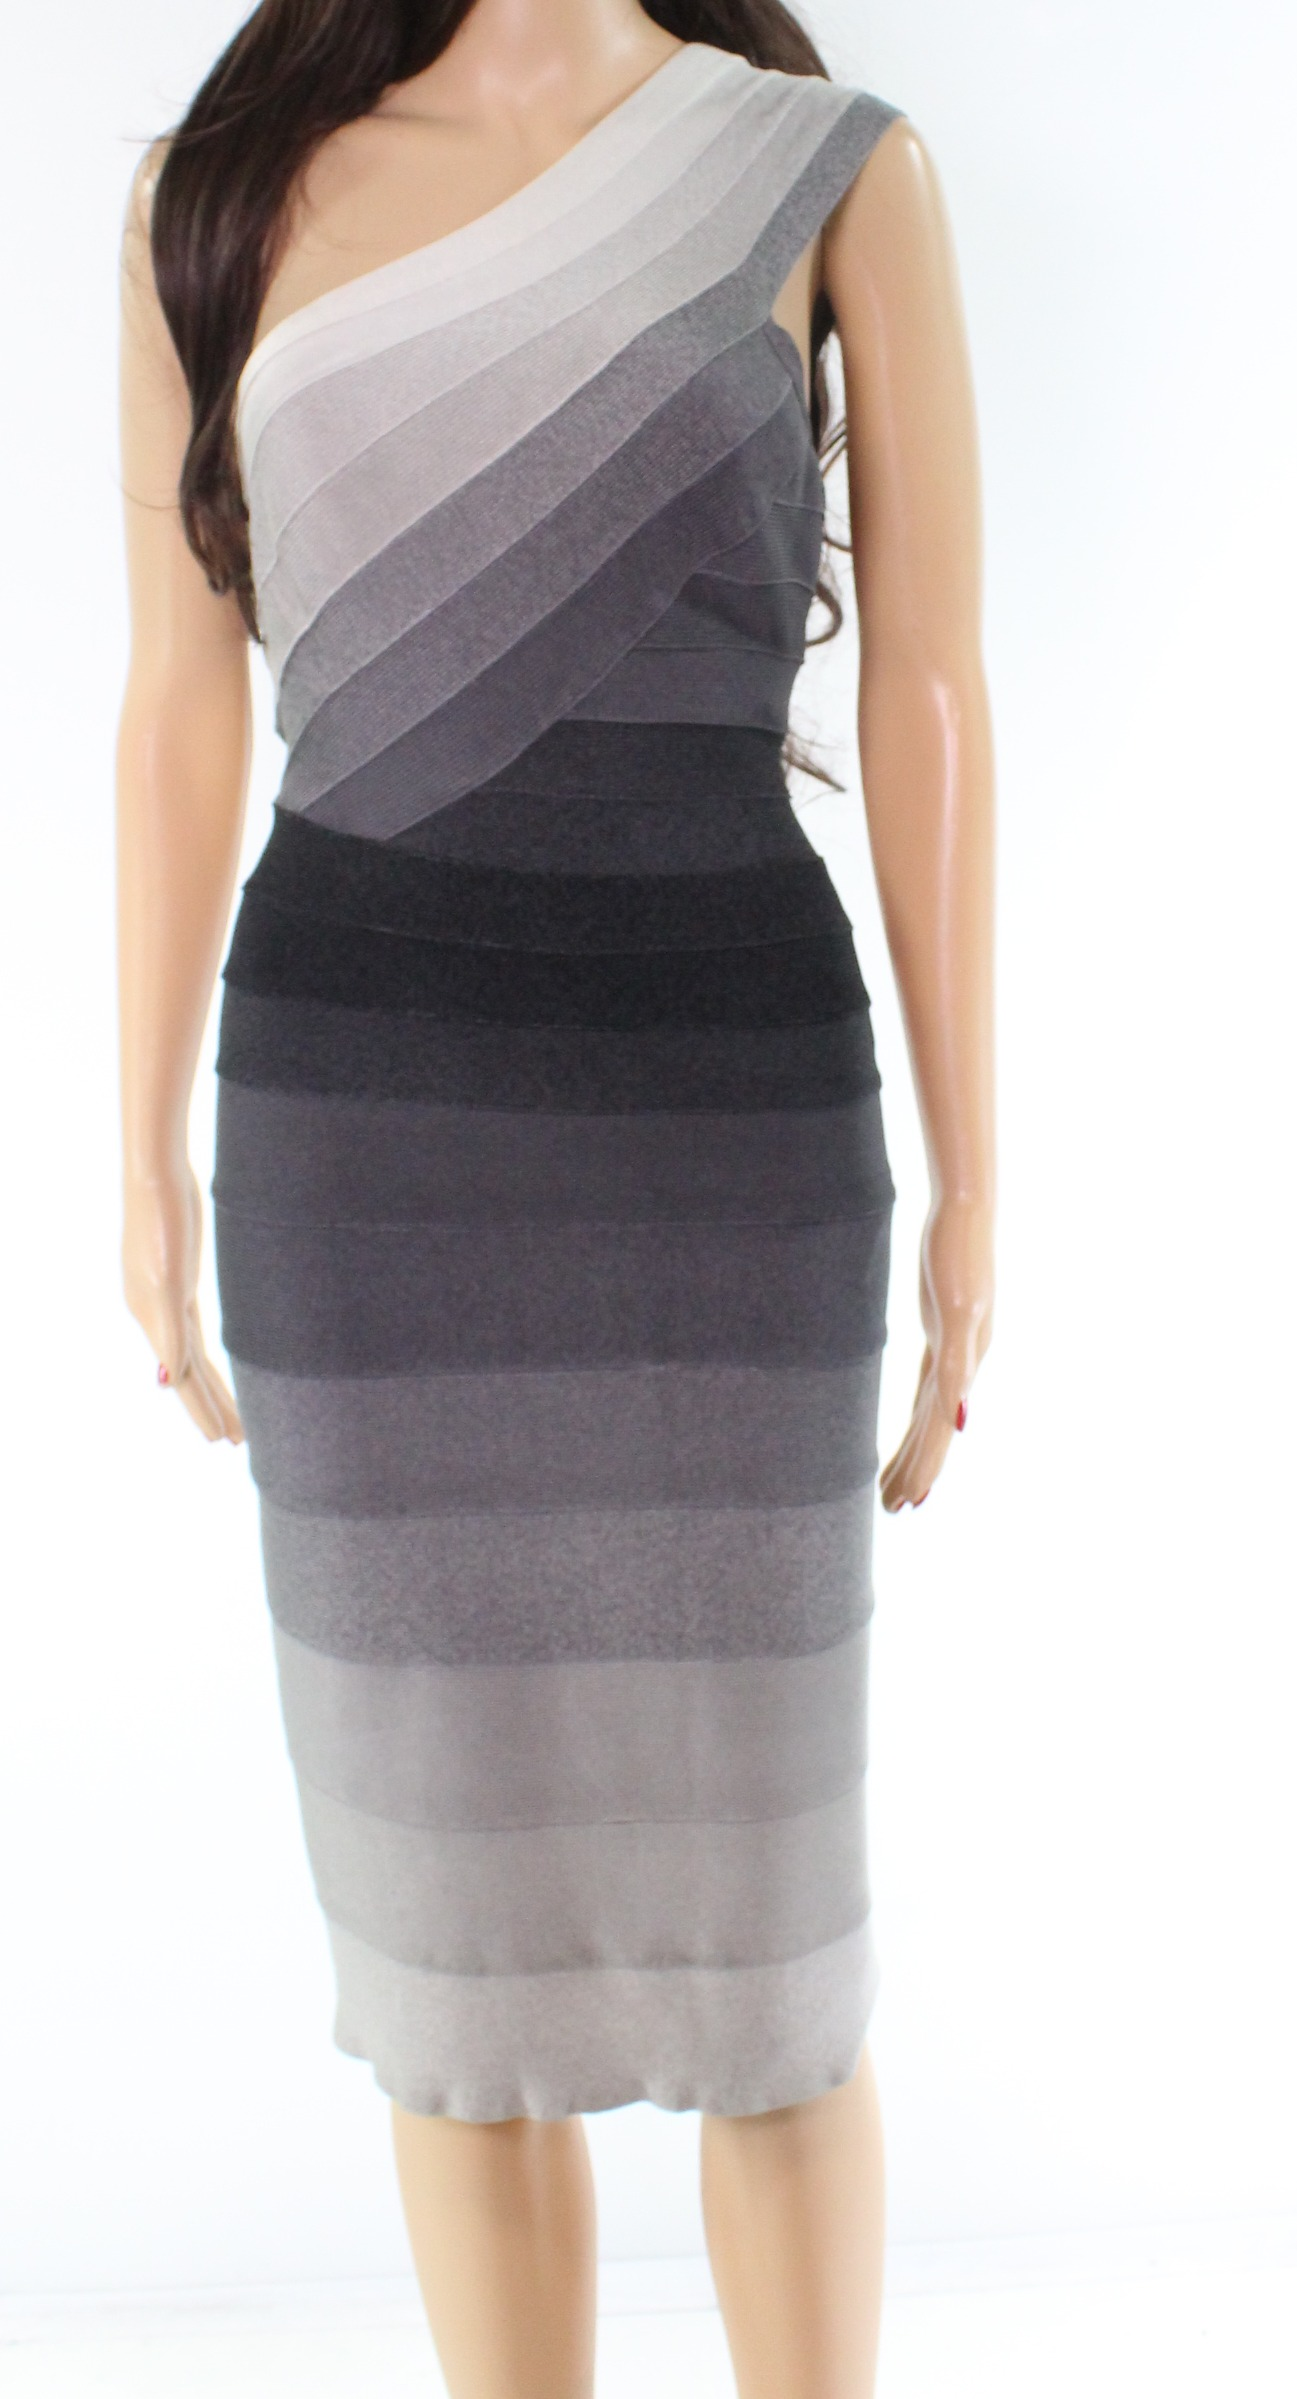 77ee10462283 Details about Herve Leger Gray Striped Knit Bodycon Women s Small S Sheath  Dress  1750-  843